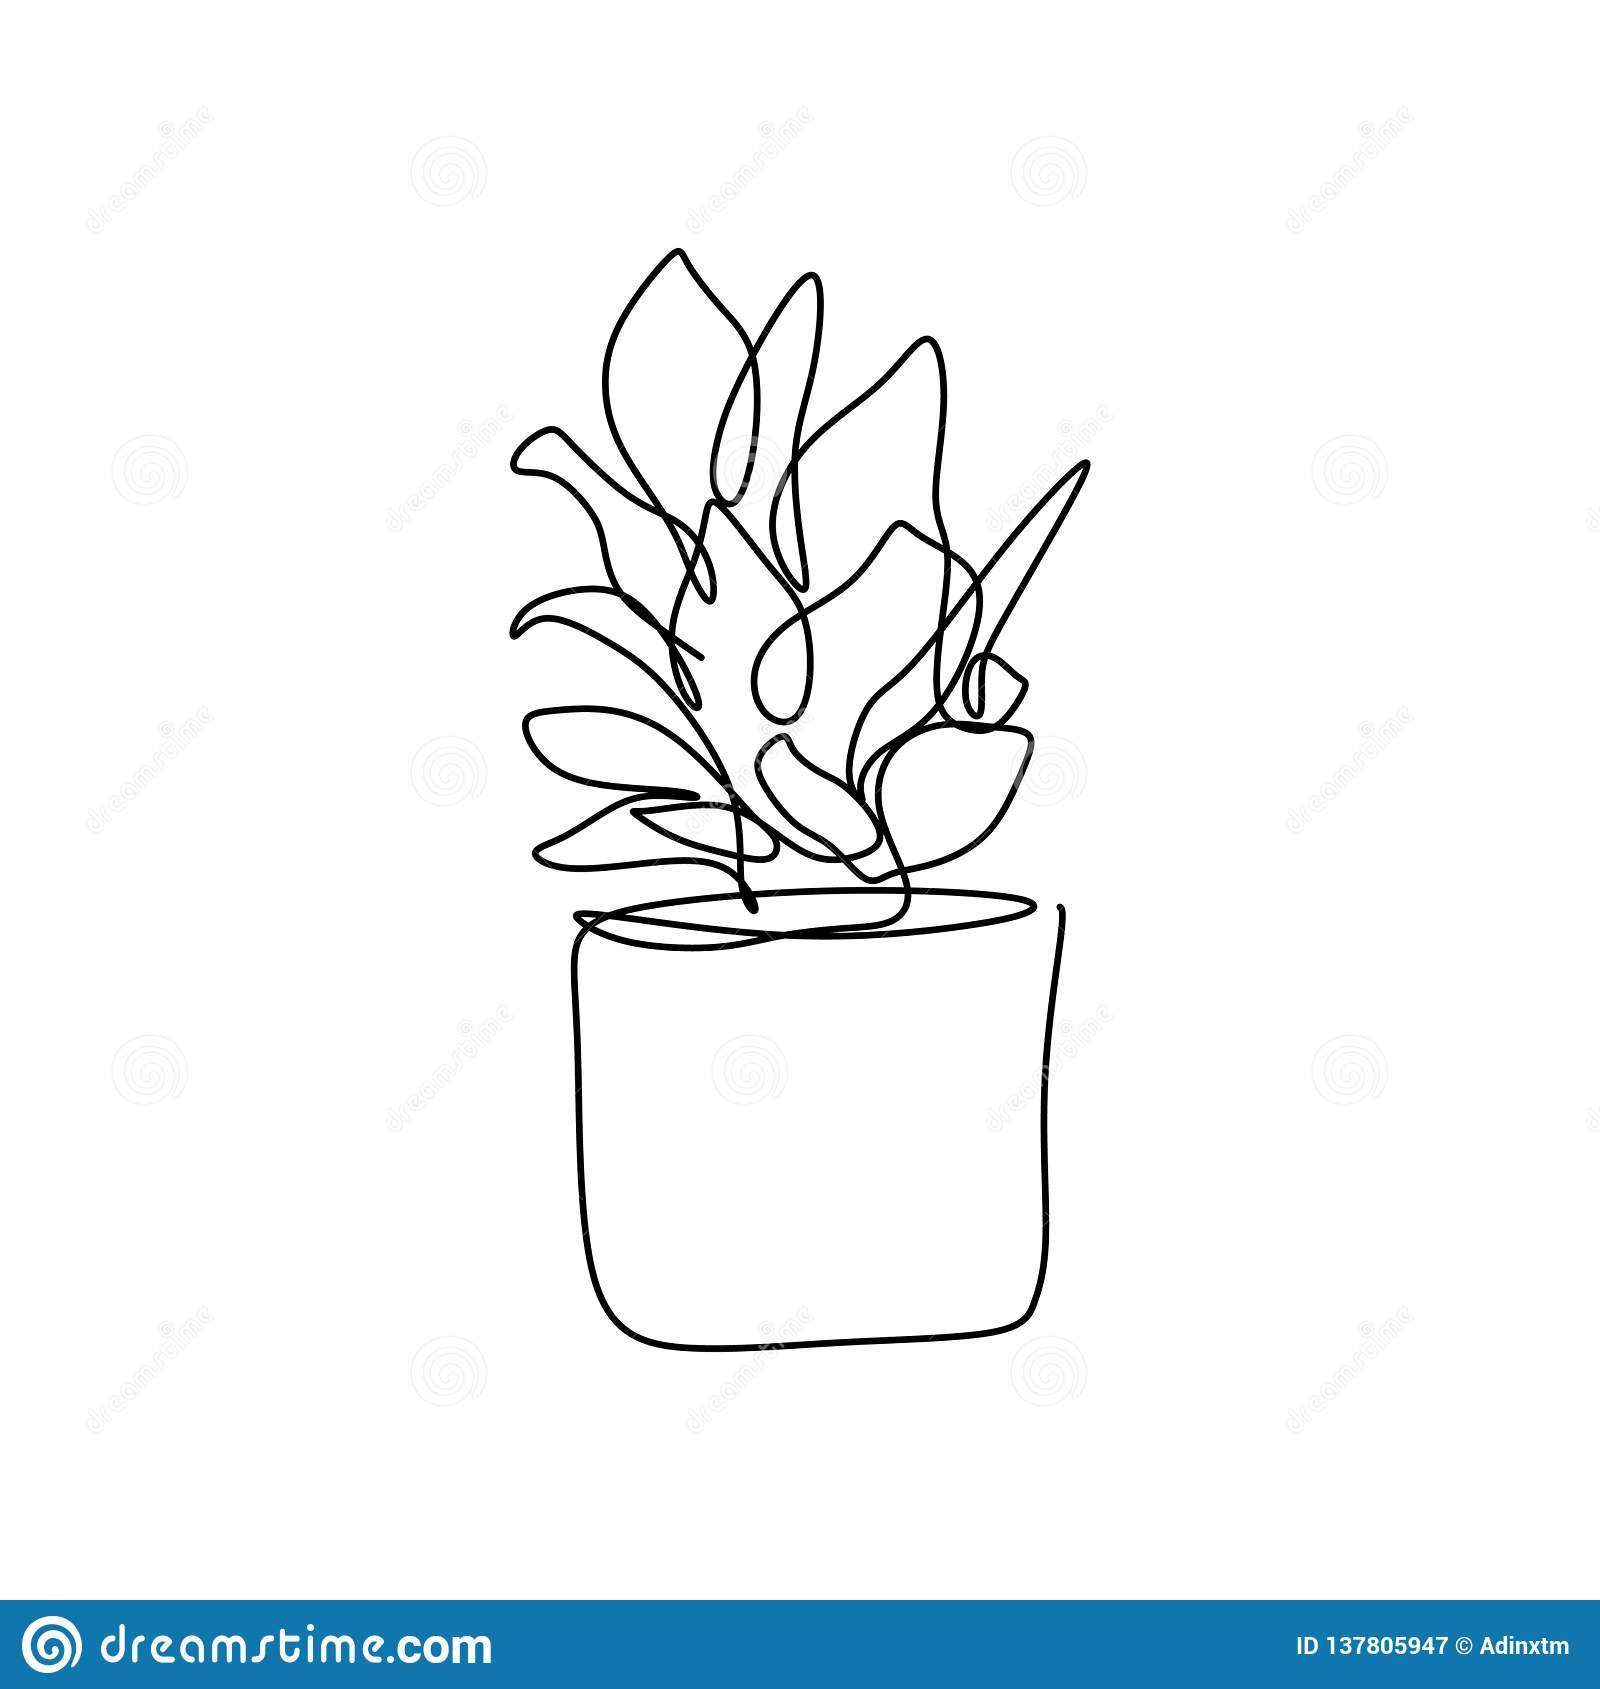 Plant In The Pot One Line Drawing Vector Illustration Continuous Stroke Minimalist Design For Wall Decor Isolated On White Stock Vector Illustration Of Line Composition 137805947